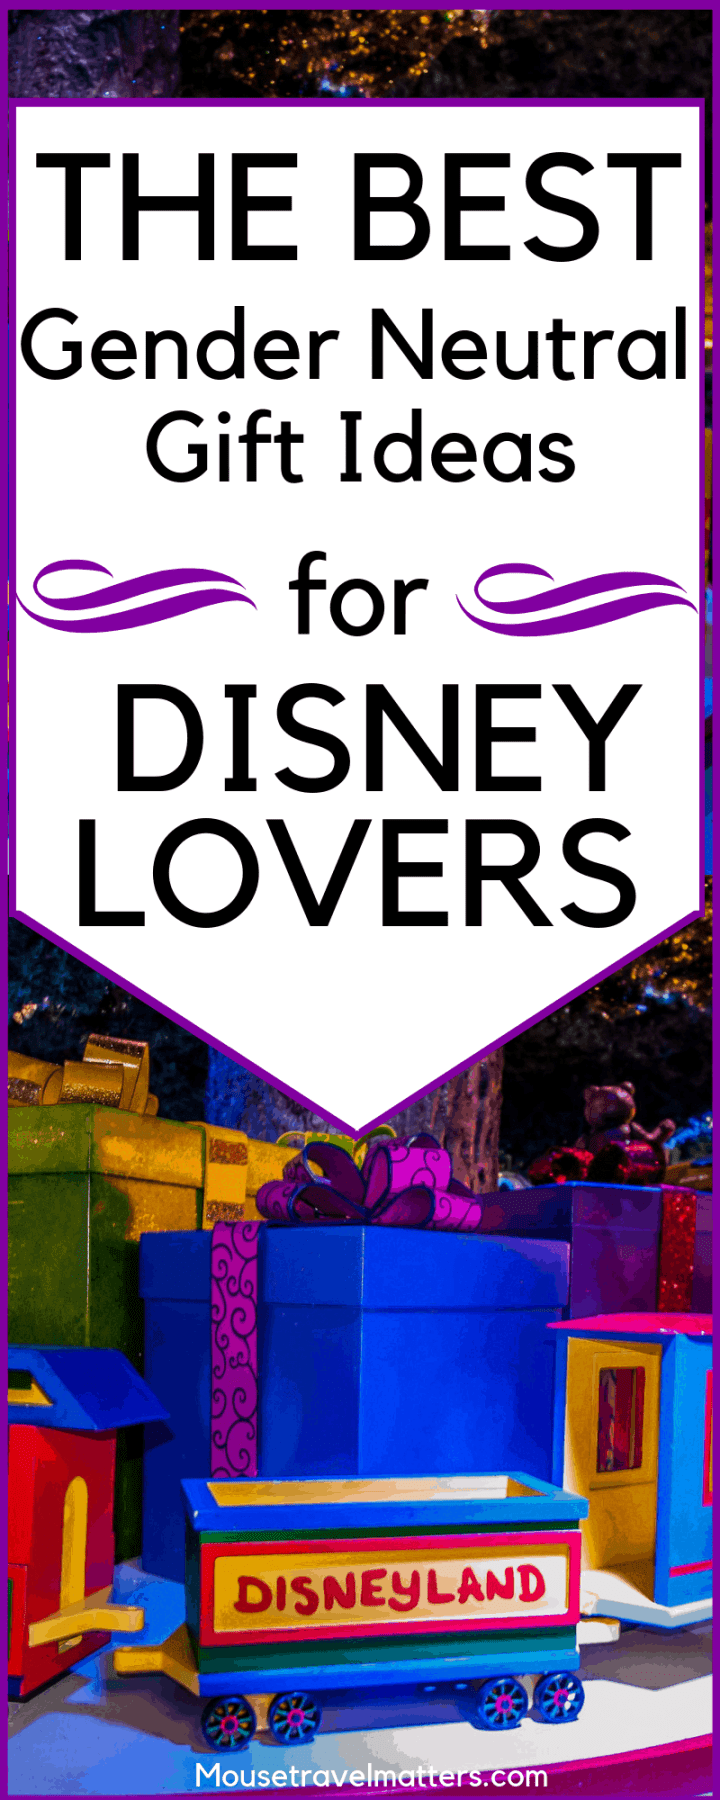 Looking for gift ideas for toddler boys and girls? Here's a Gender-neutral Disney gift guide and full of great learning toys and activities!